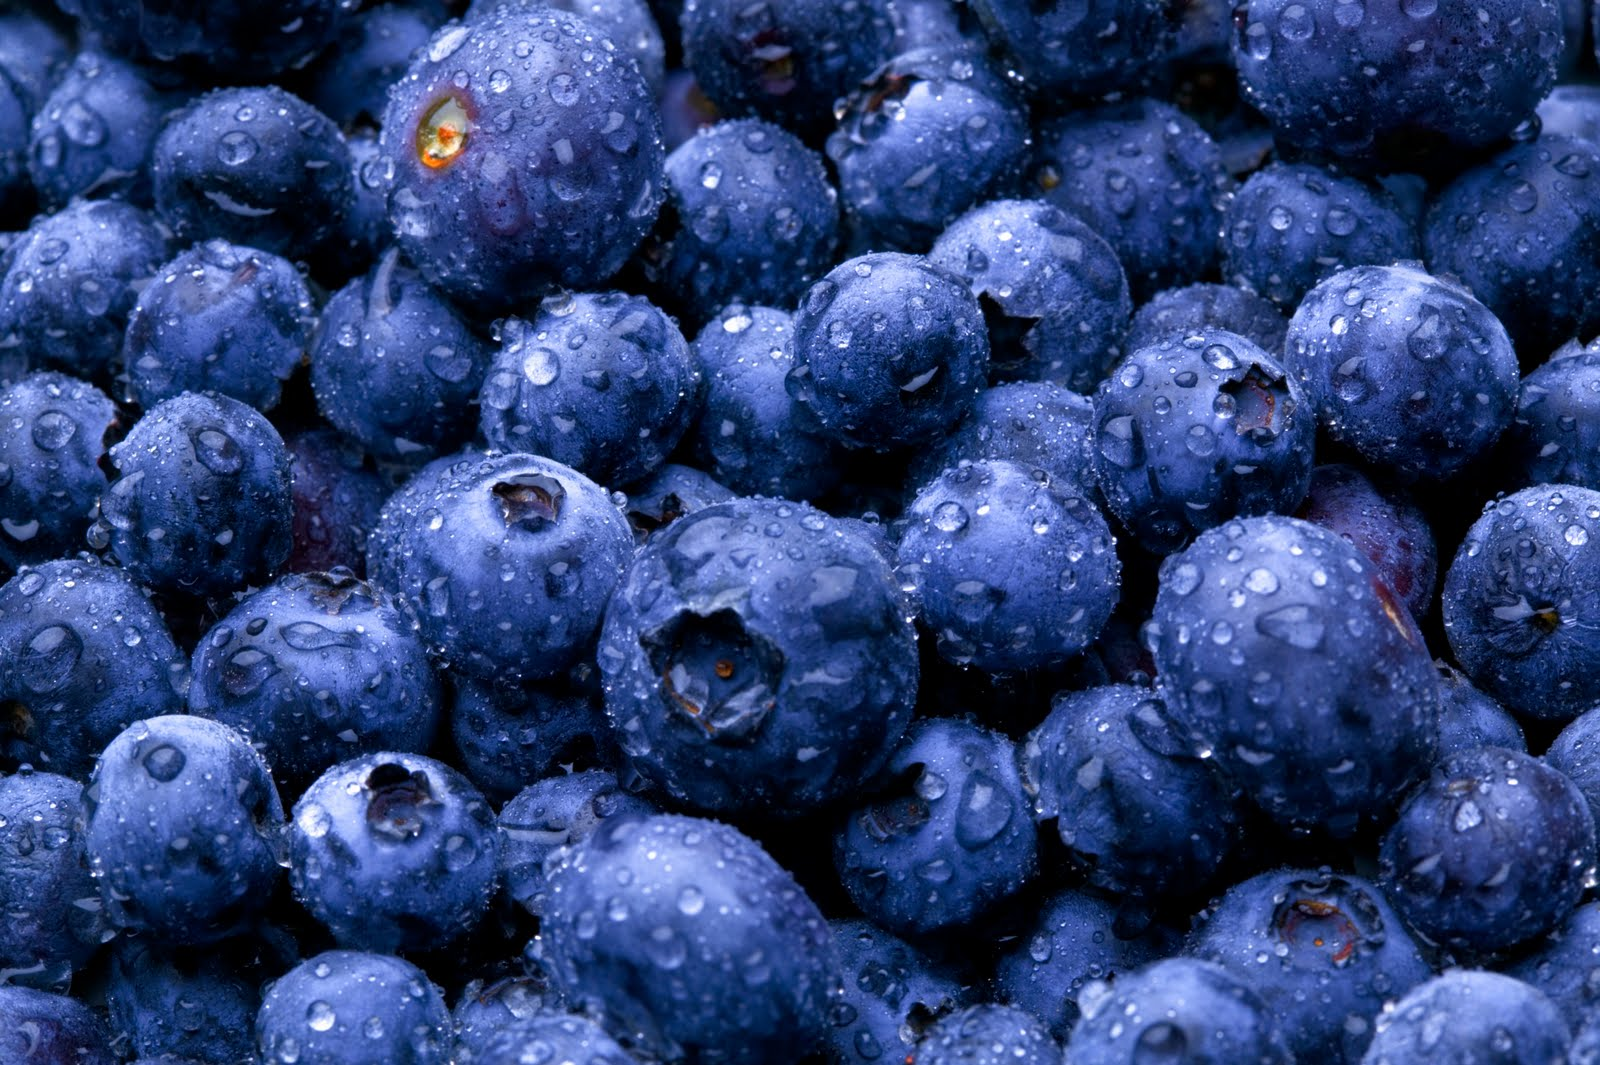 Indigo Roth presents Blueberries in America